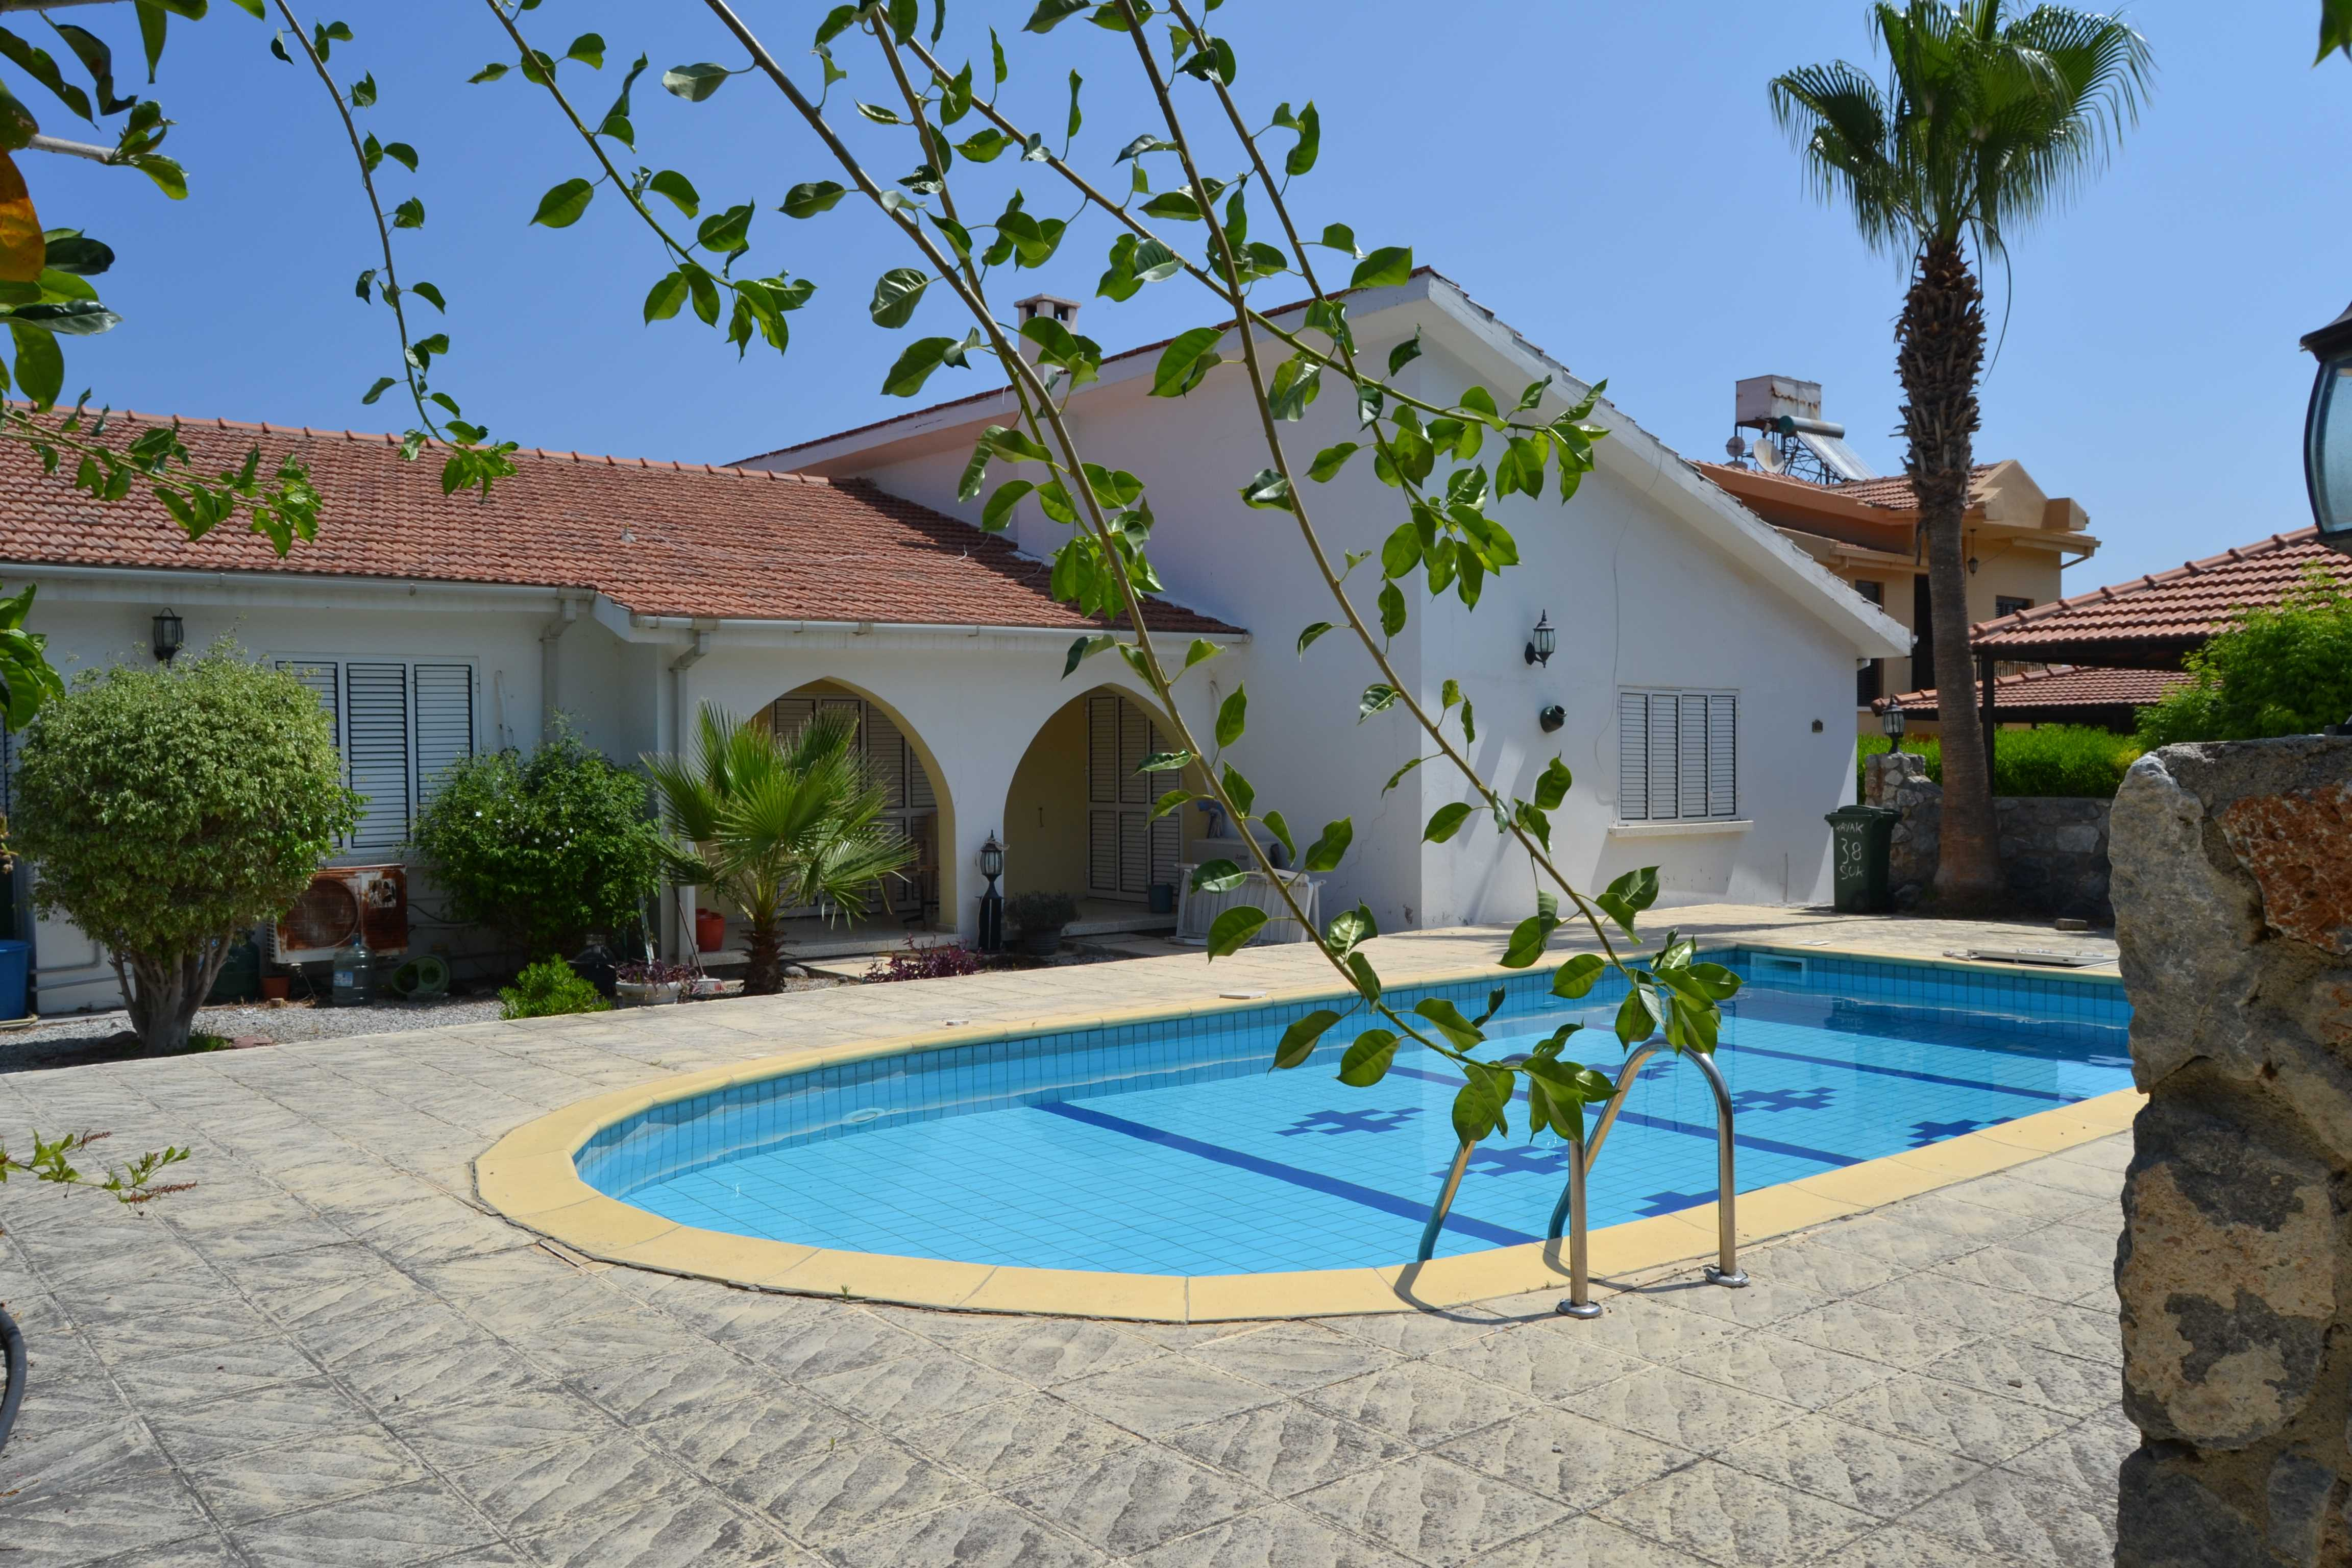 THREE-BEDROOM-BUNGALOW-WITH-PRIVATE-POOL-OZ154